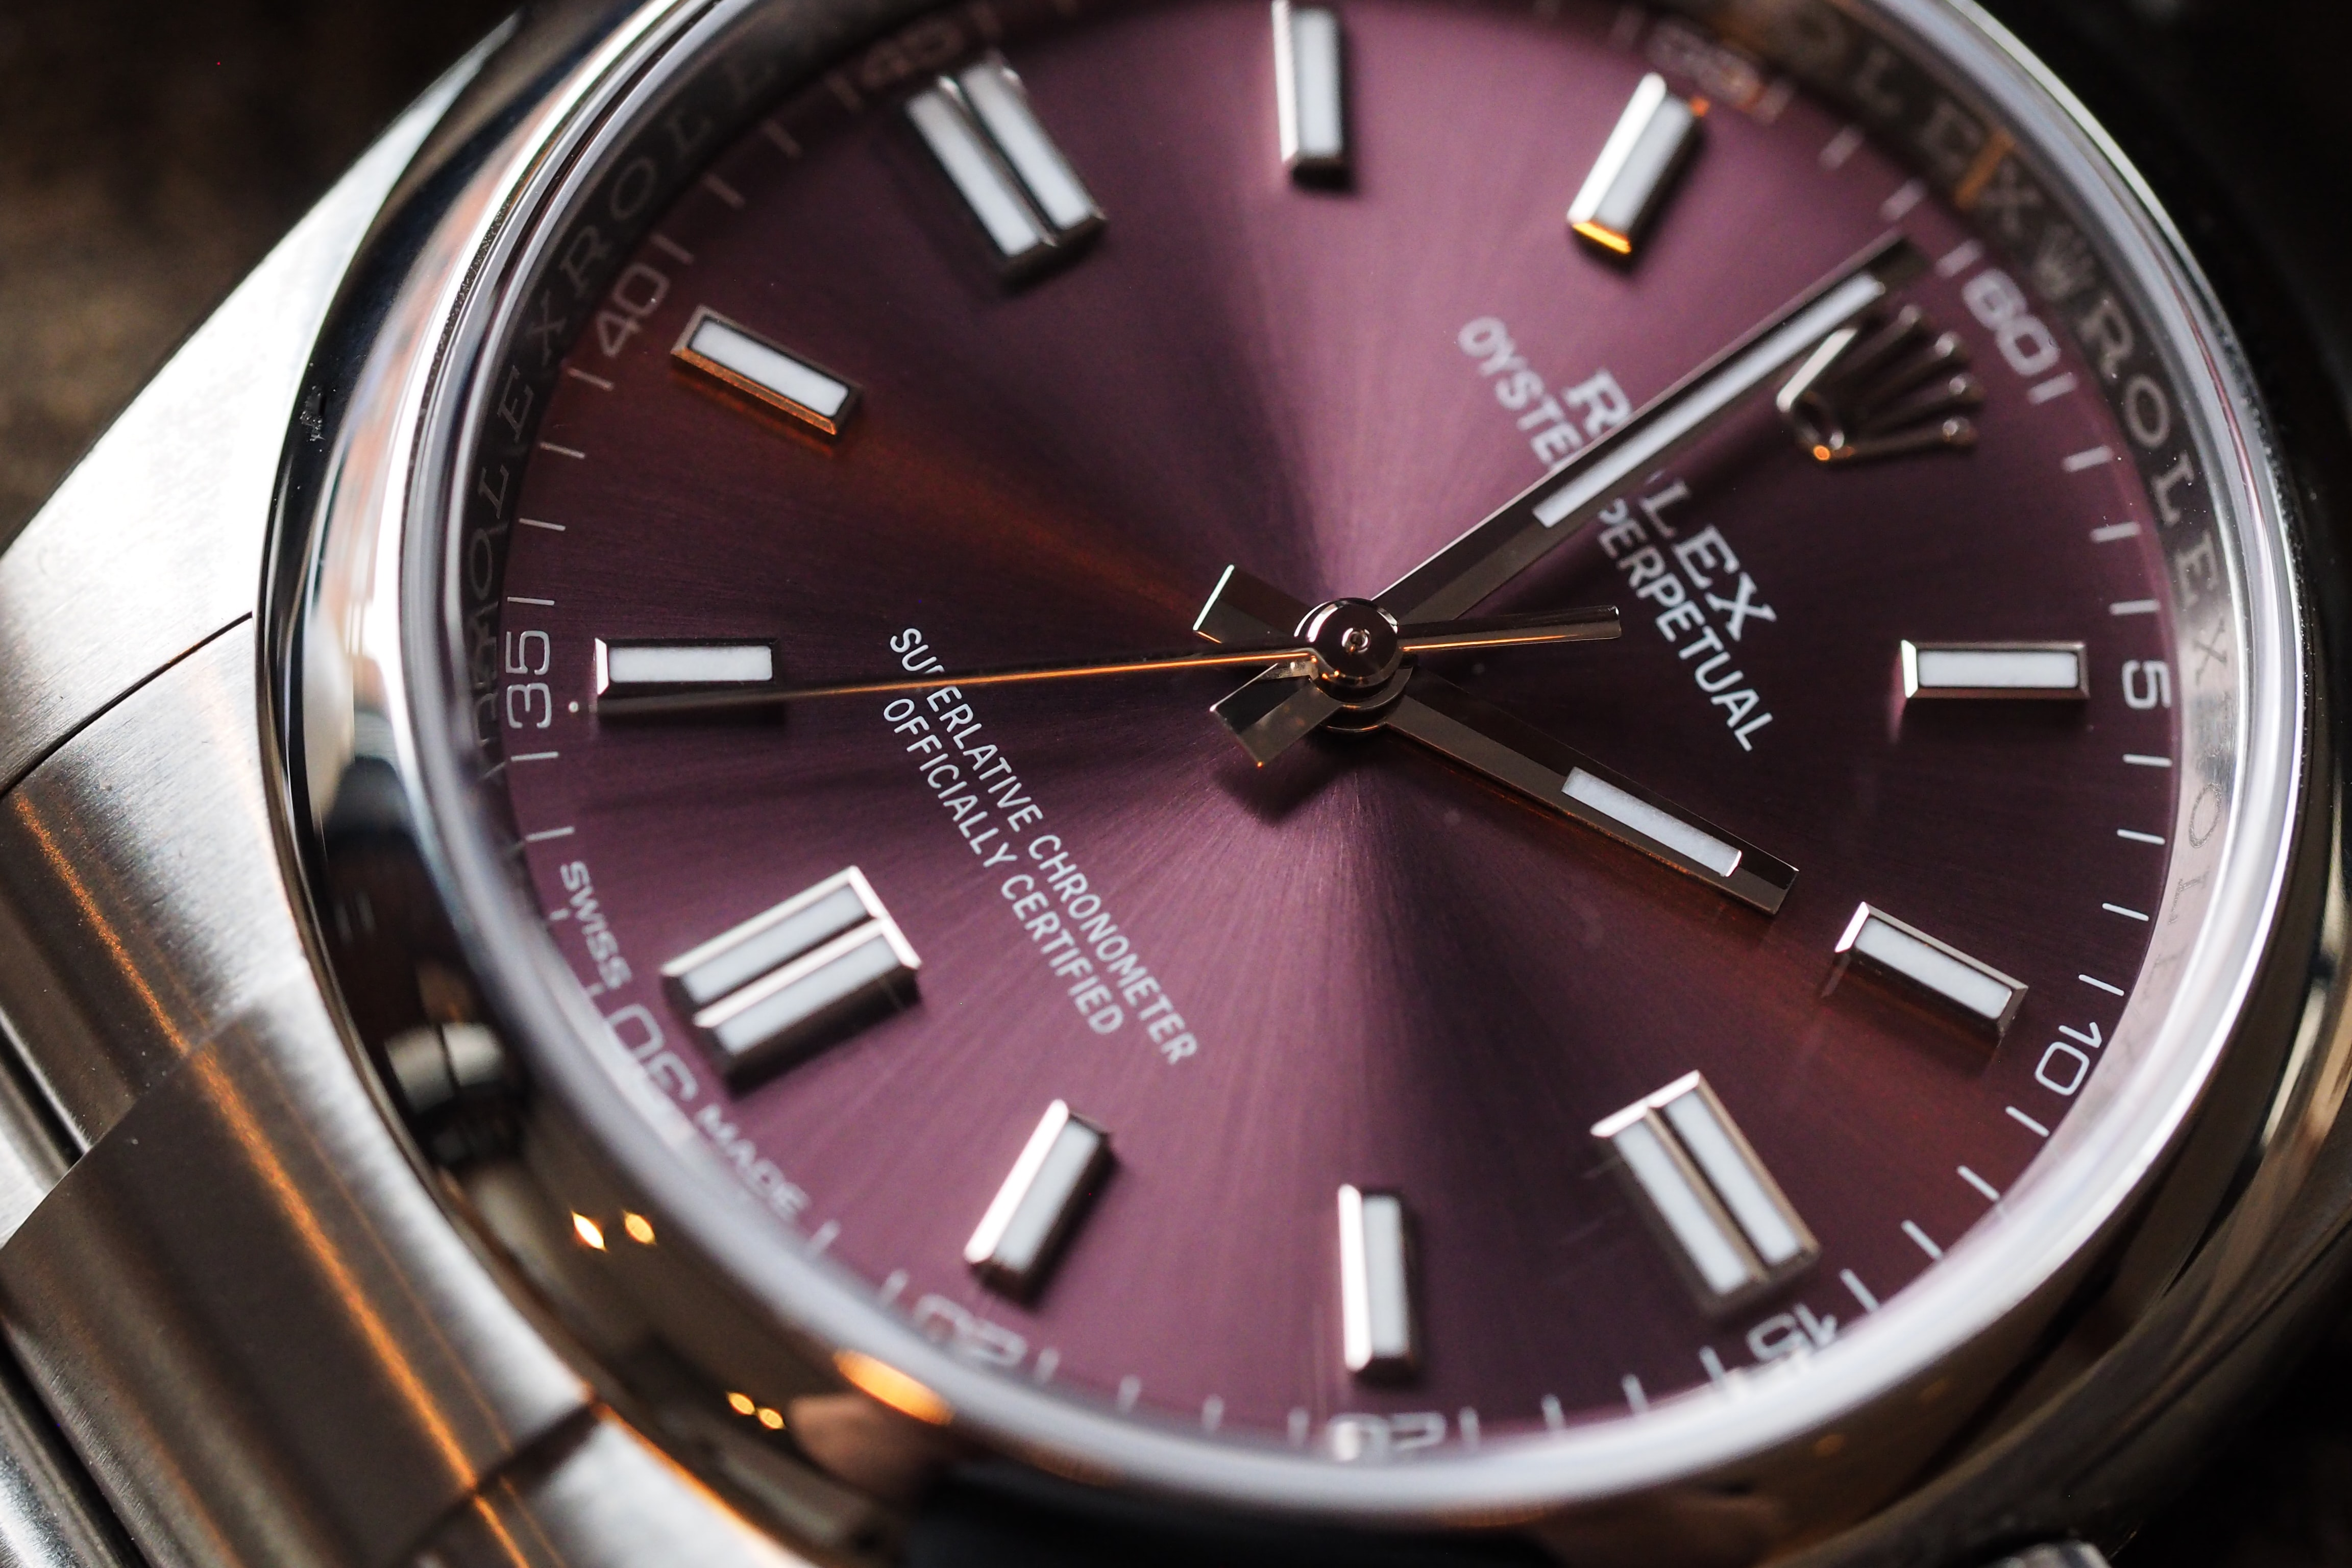 Hands-On: Grape Flavored Oyster: The Rolex Oyster 36 With Red Grape Dial Hands-On: Grape Flavored Oyster: The Rolex Oyster 36 With Red Grape Dial P5050320